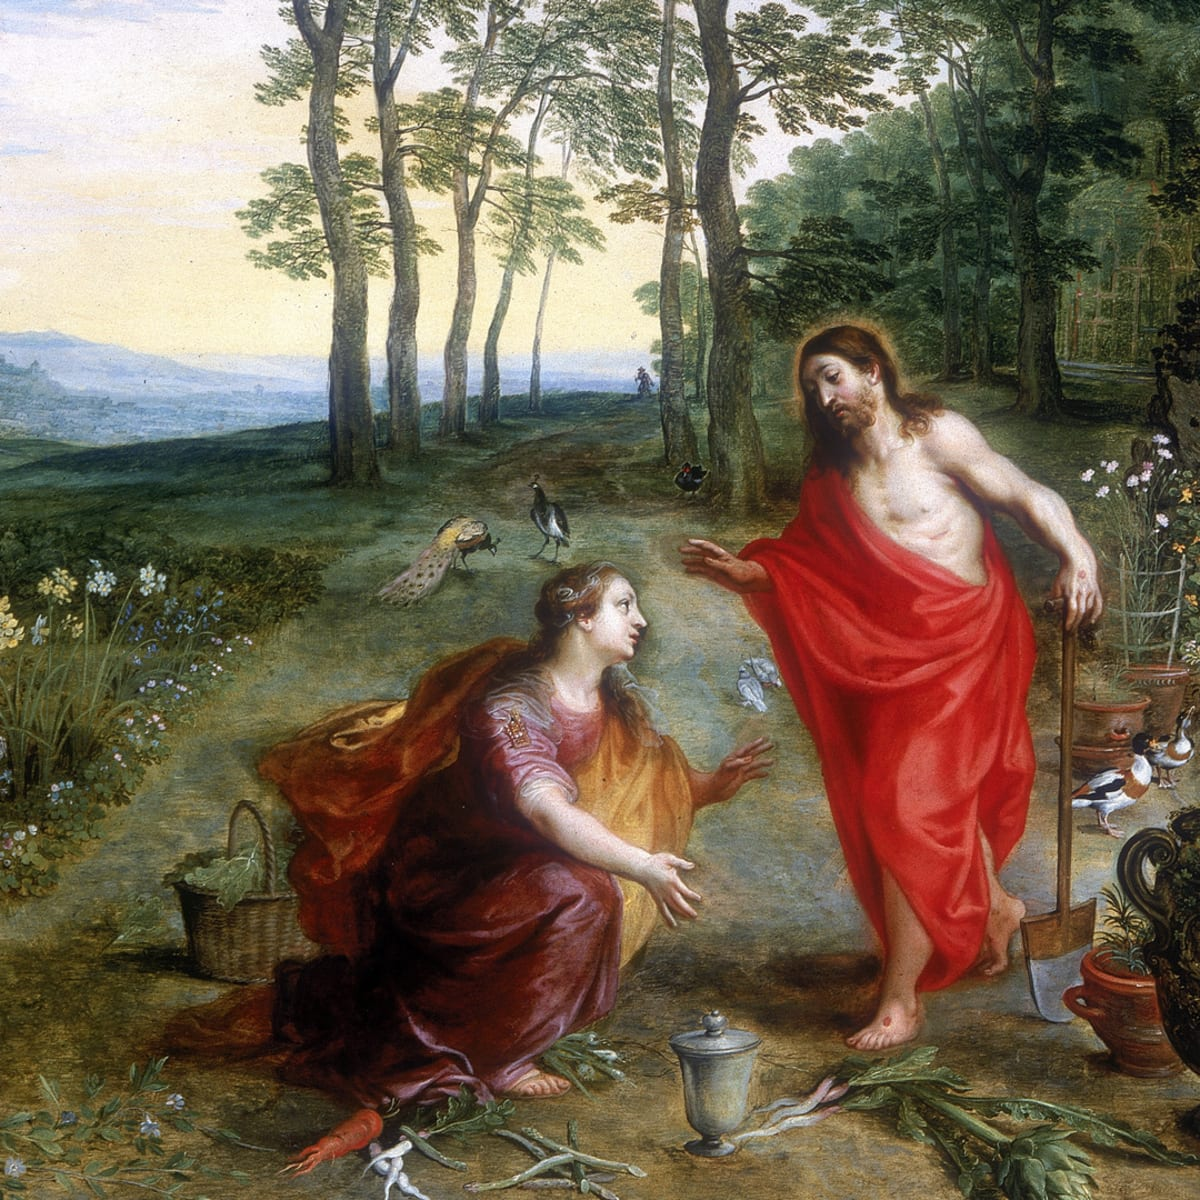 Who Was Mary Magdalene: Wife, Prostitute or None of the Above? - HISTORY